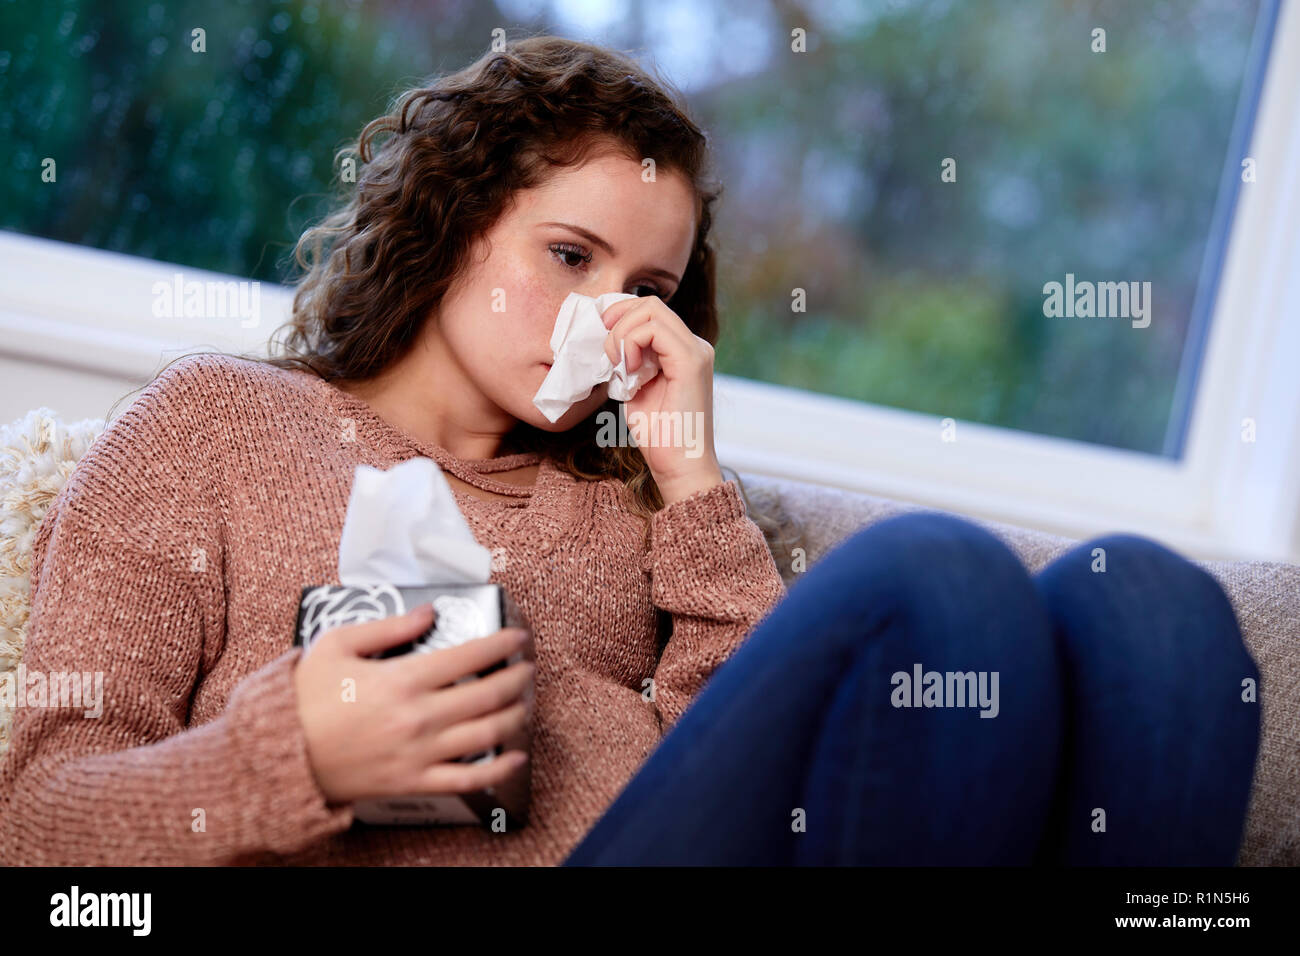 Woman with tissues blowing her nose - Stock Image